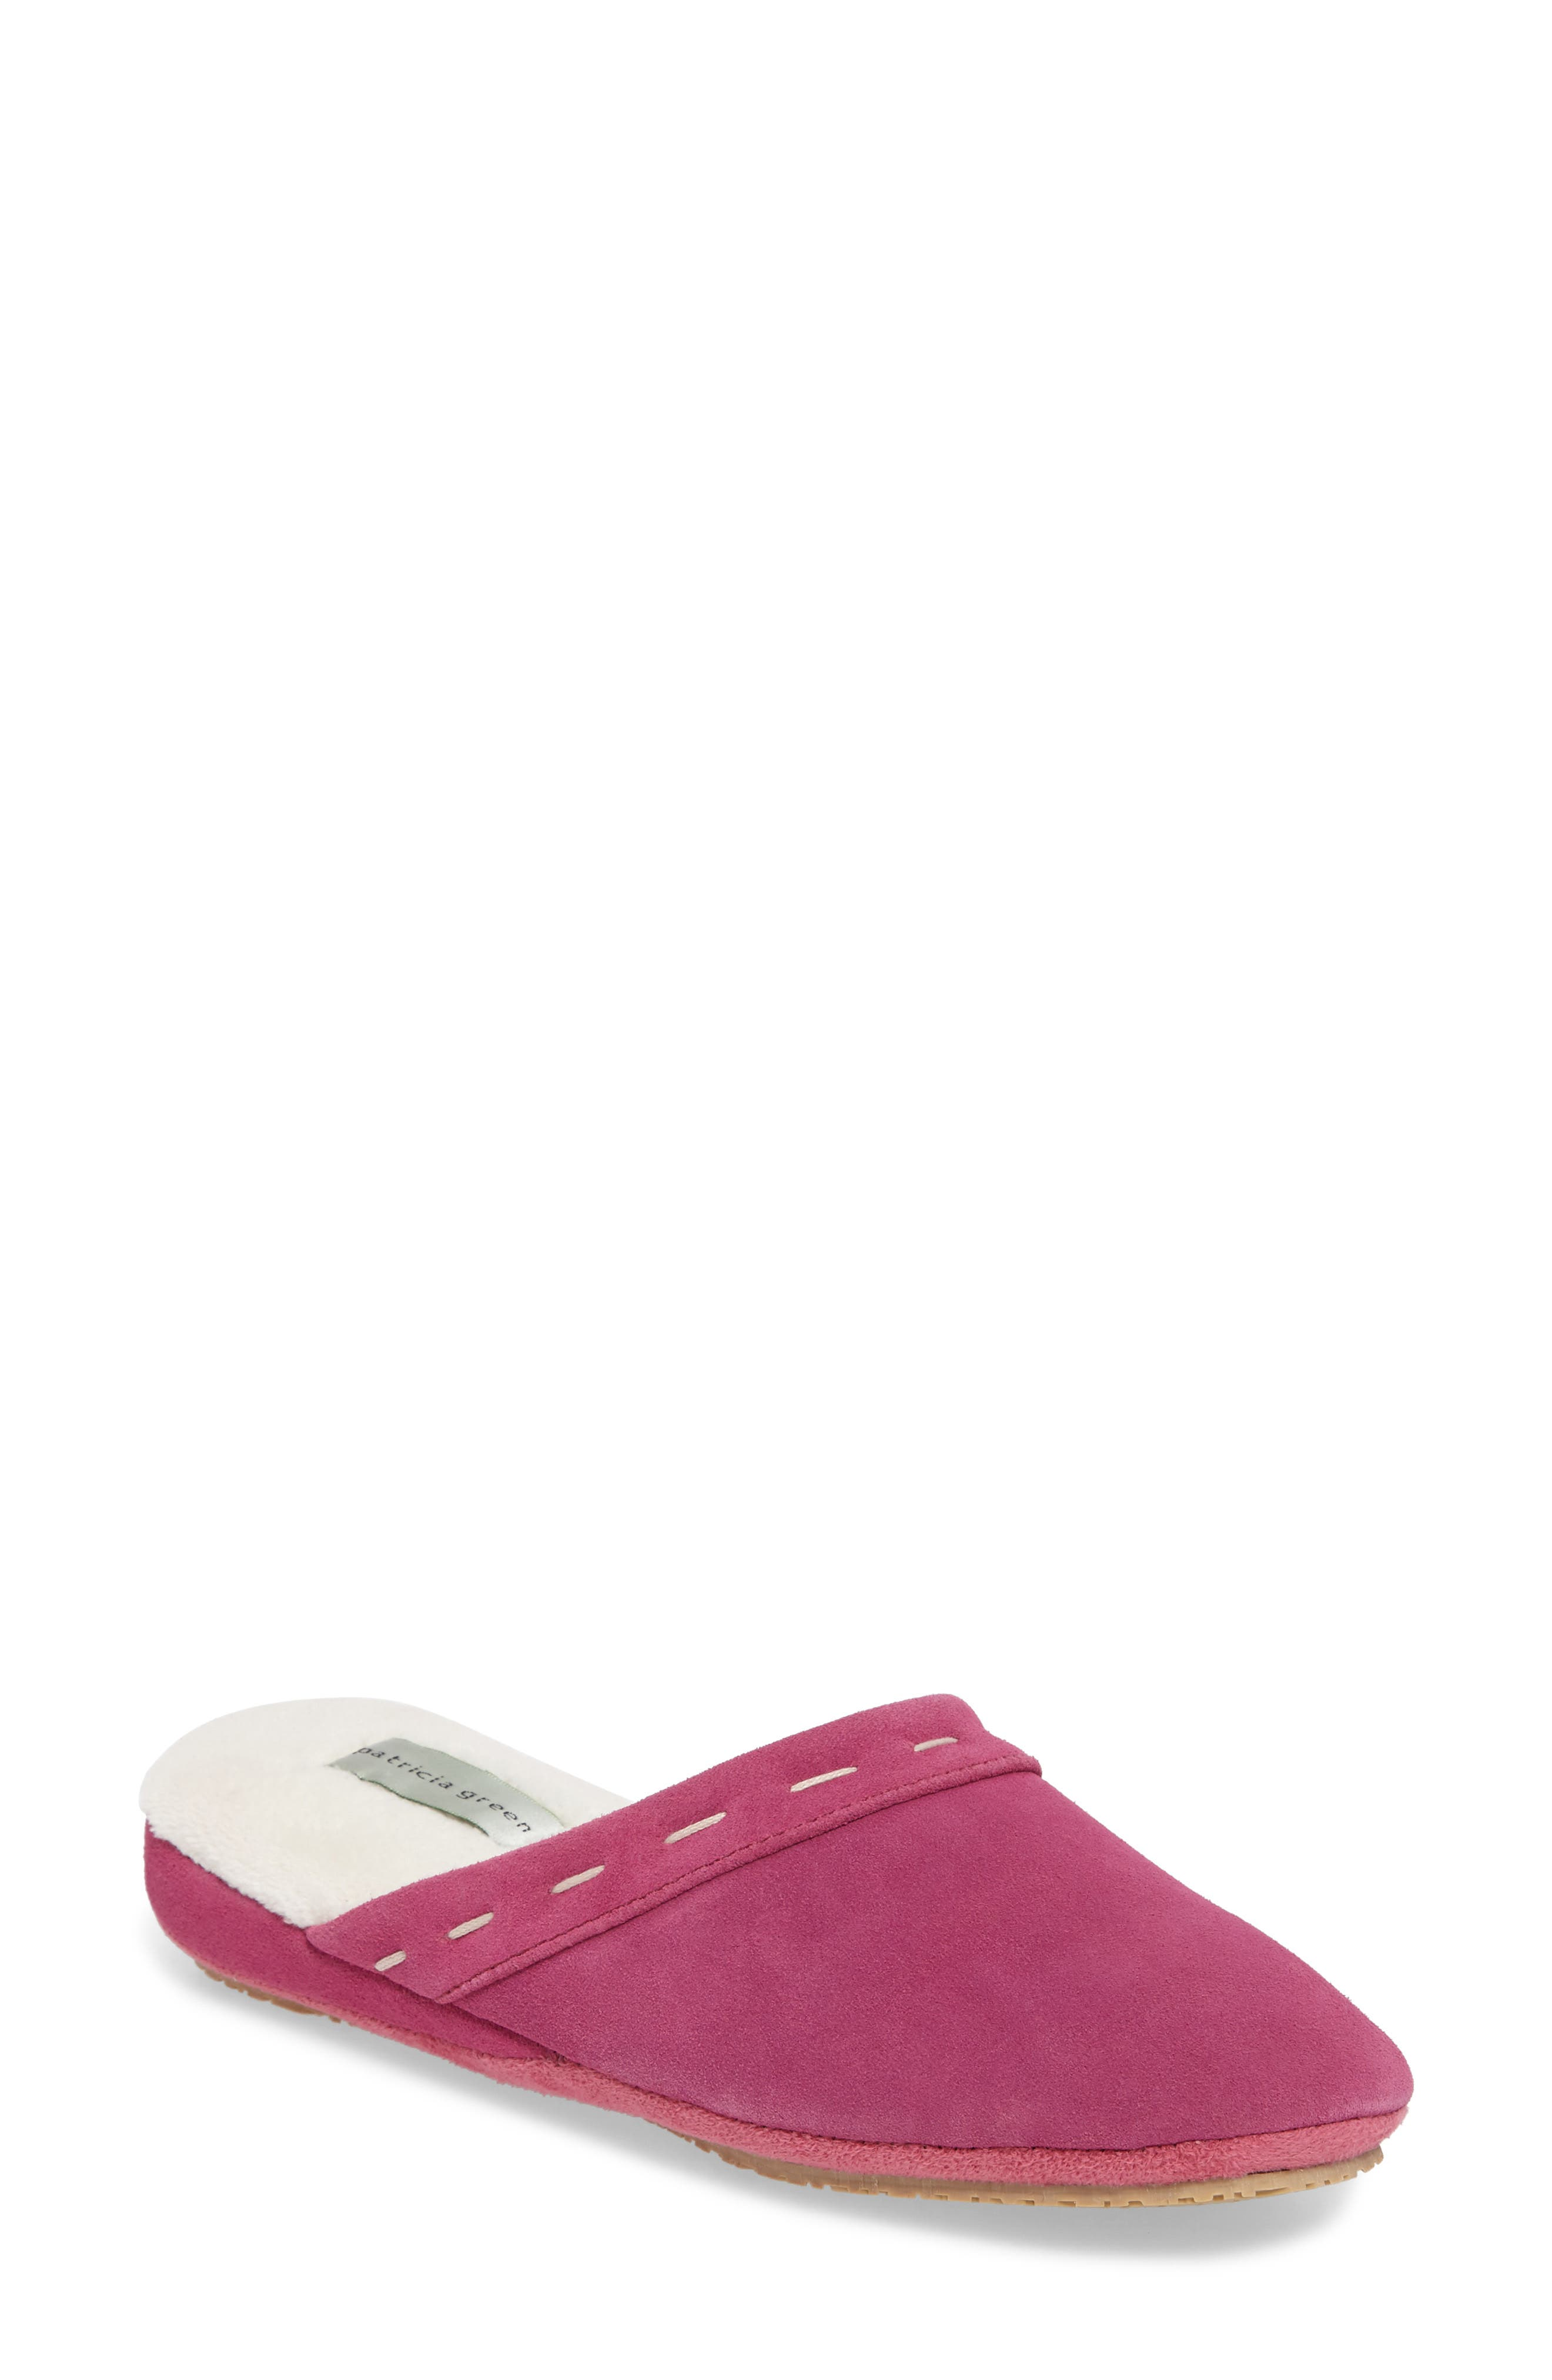 Mayfair Wedge Slipper,                         Main,                         color, Hot Pink Suede